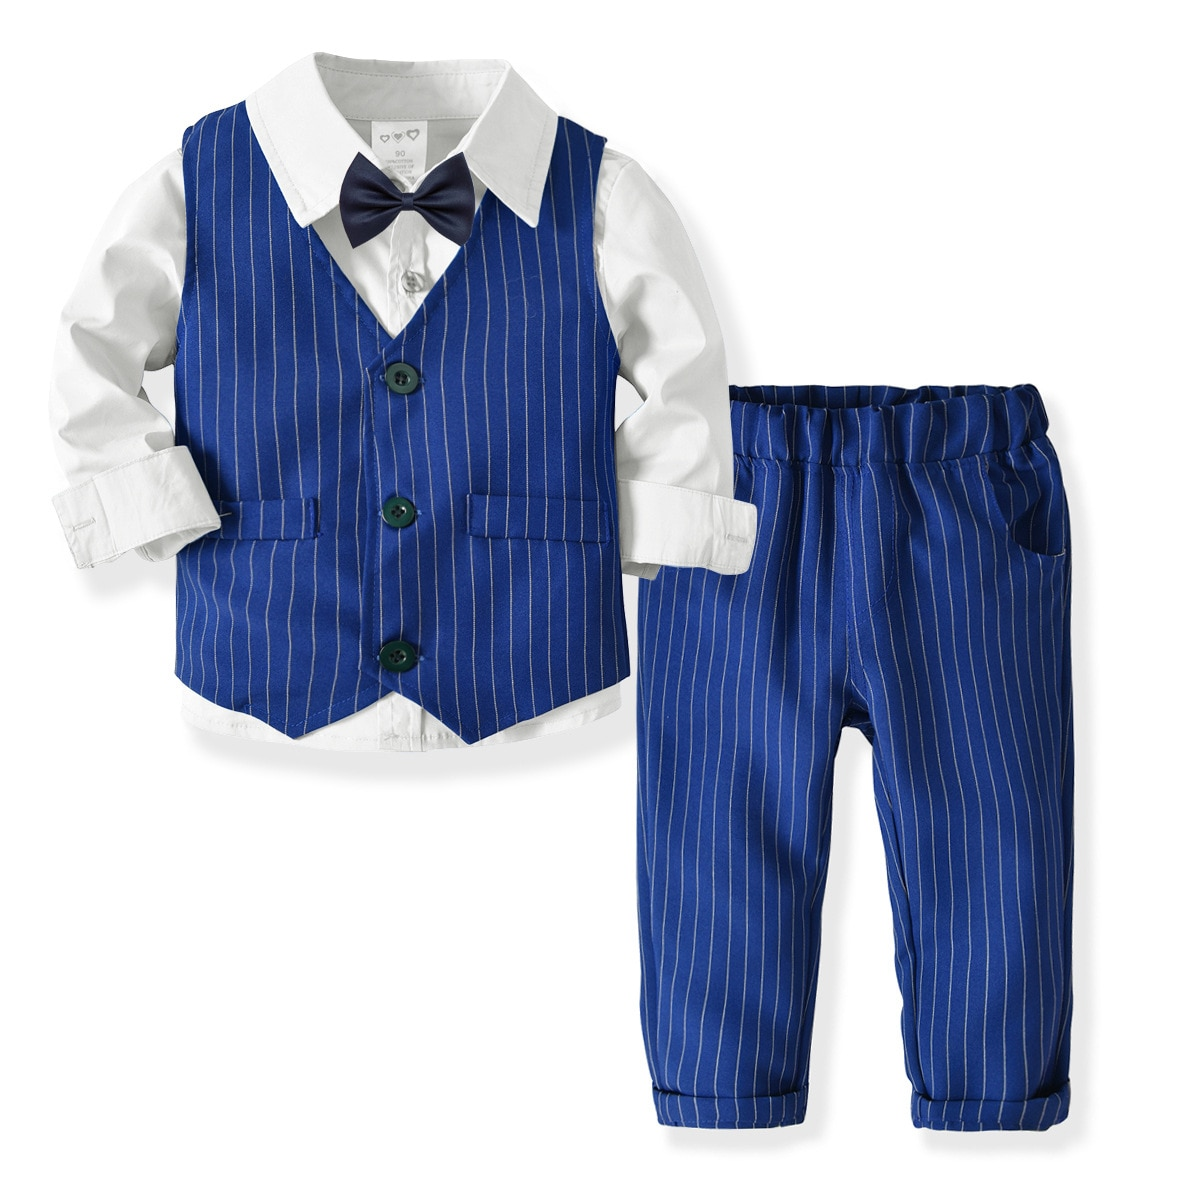 [해외]Oklady 2019 3pcs set autumn children`s leisure clothing sets  boy suit vest gentleman clothes for weddings formal clothing Suit/Oklady 2019 3pcs s